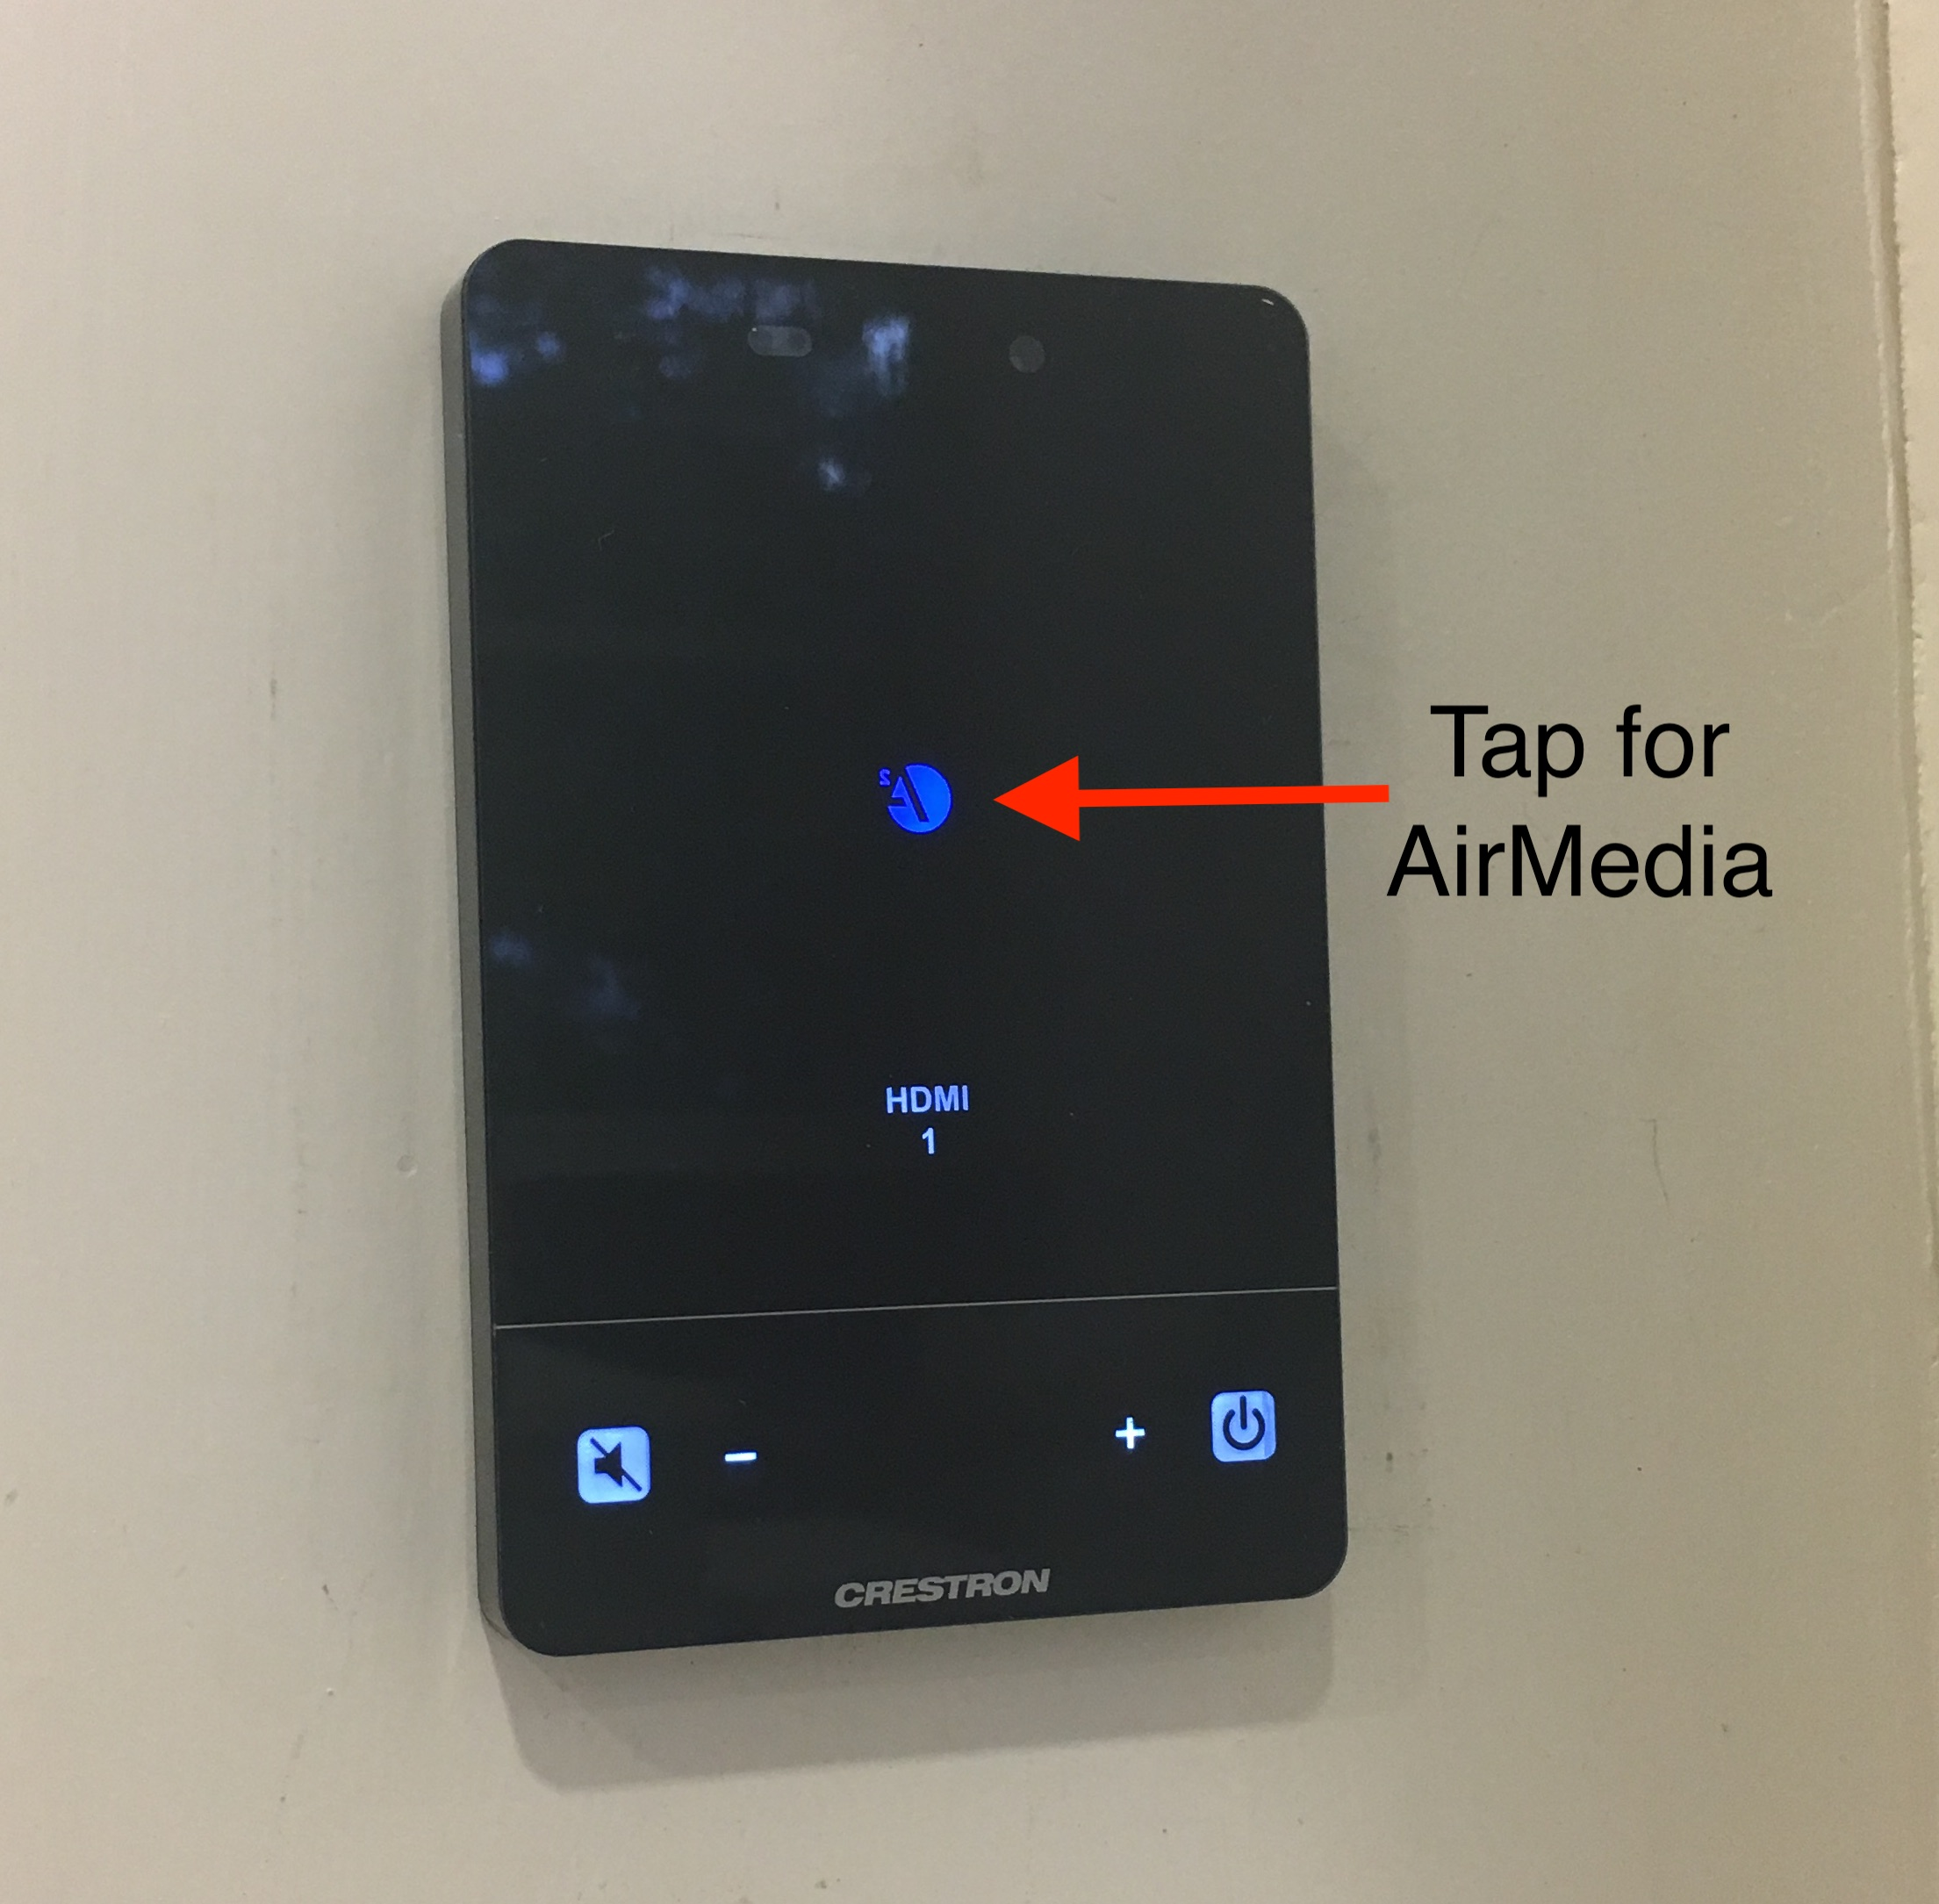 Picture of what to press on controller for AirMedia.